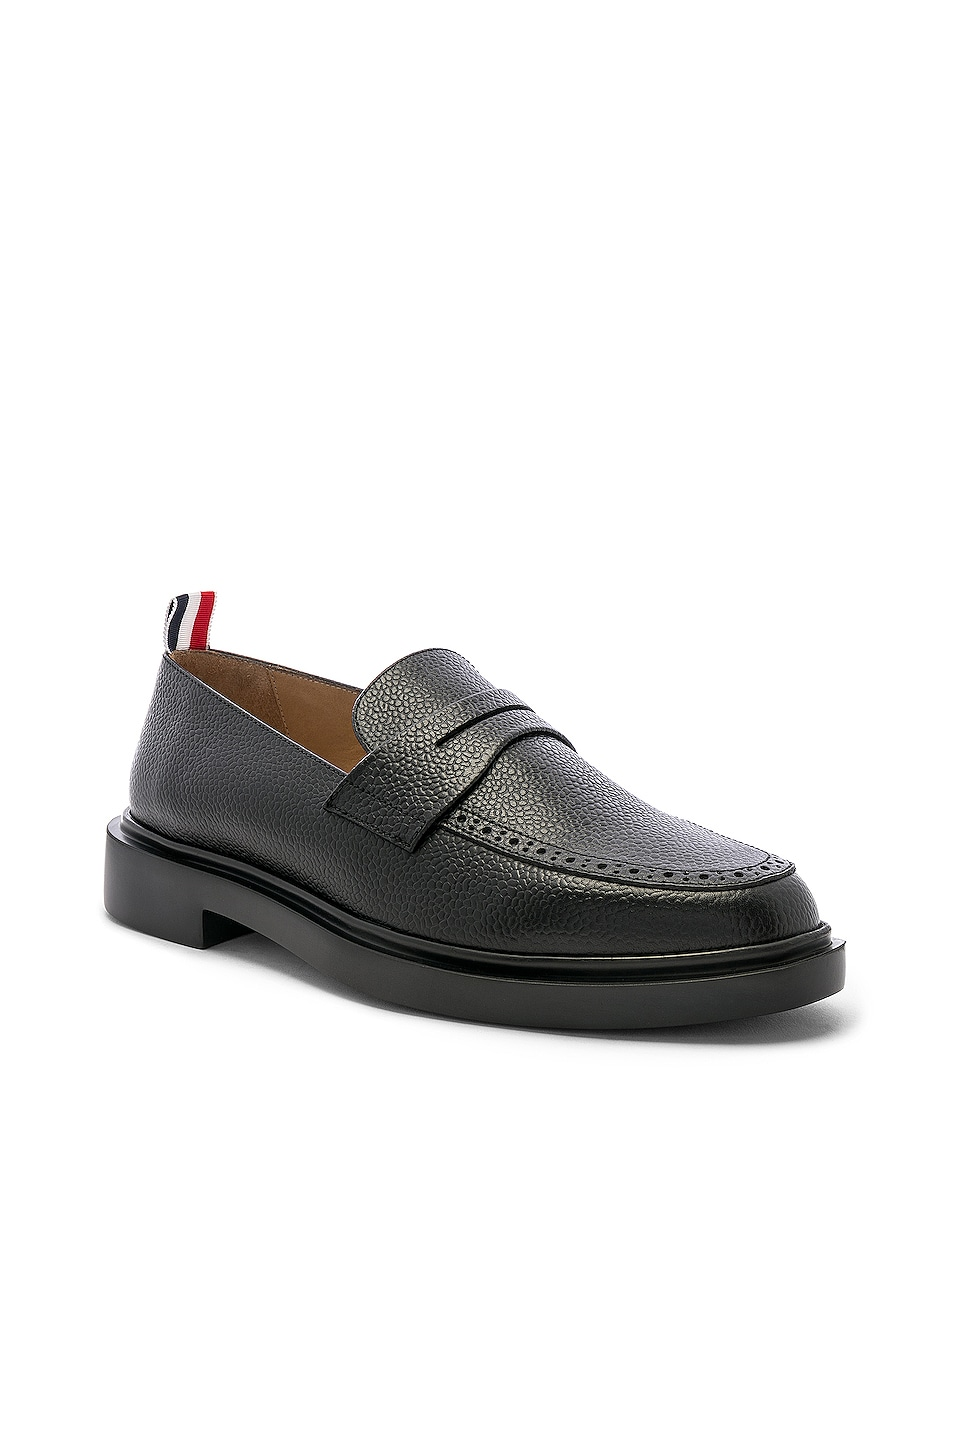 Image 2 of Thom Browne Rubber Sole Loafer in Black